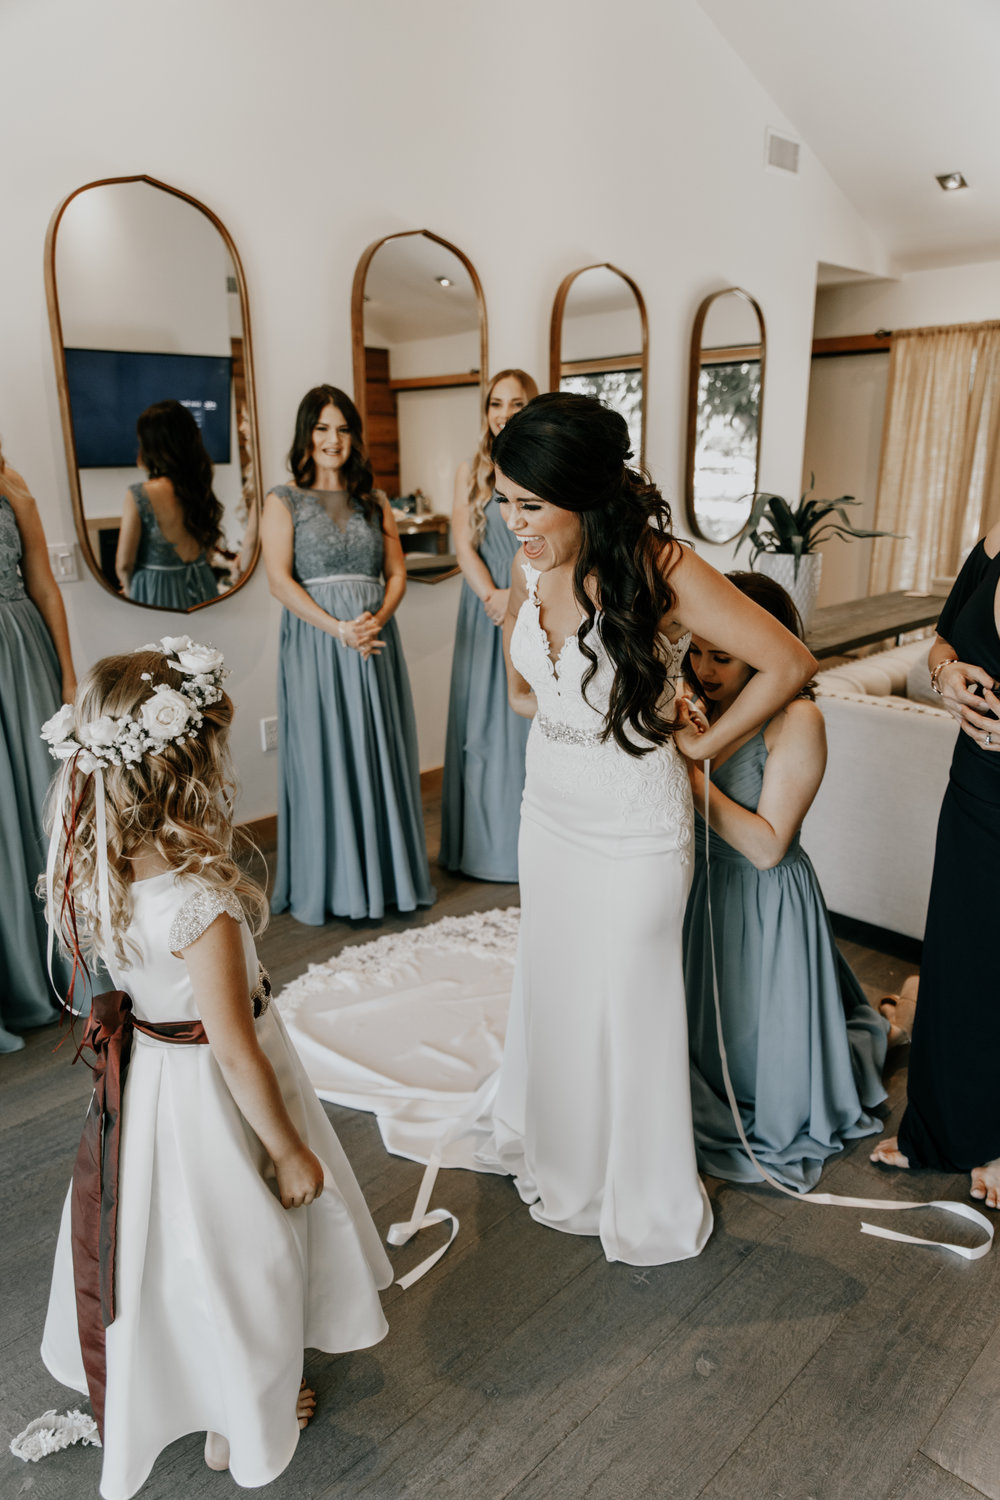 Bride and Flower girl - wedding photos